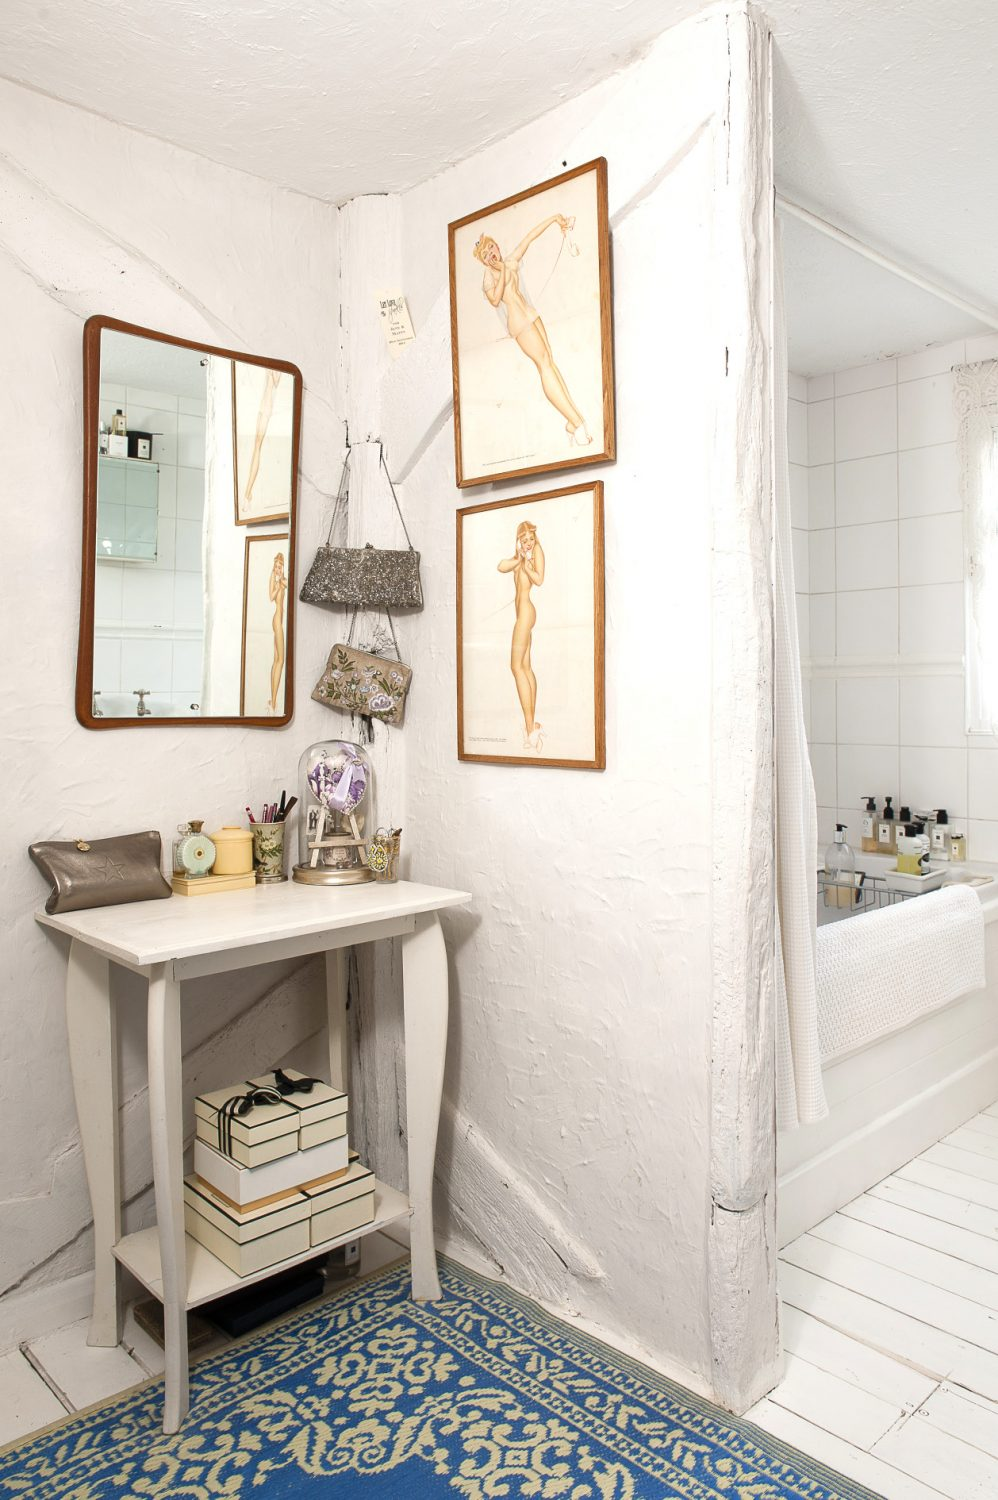 The pretty bathroom is home to more artwork